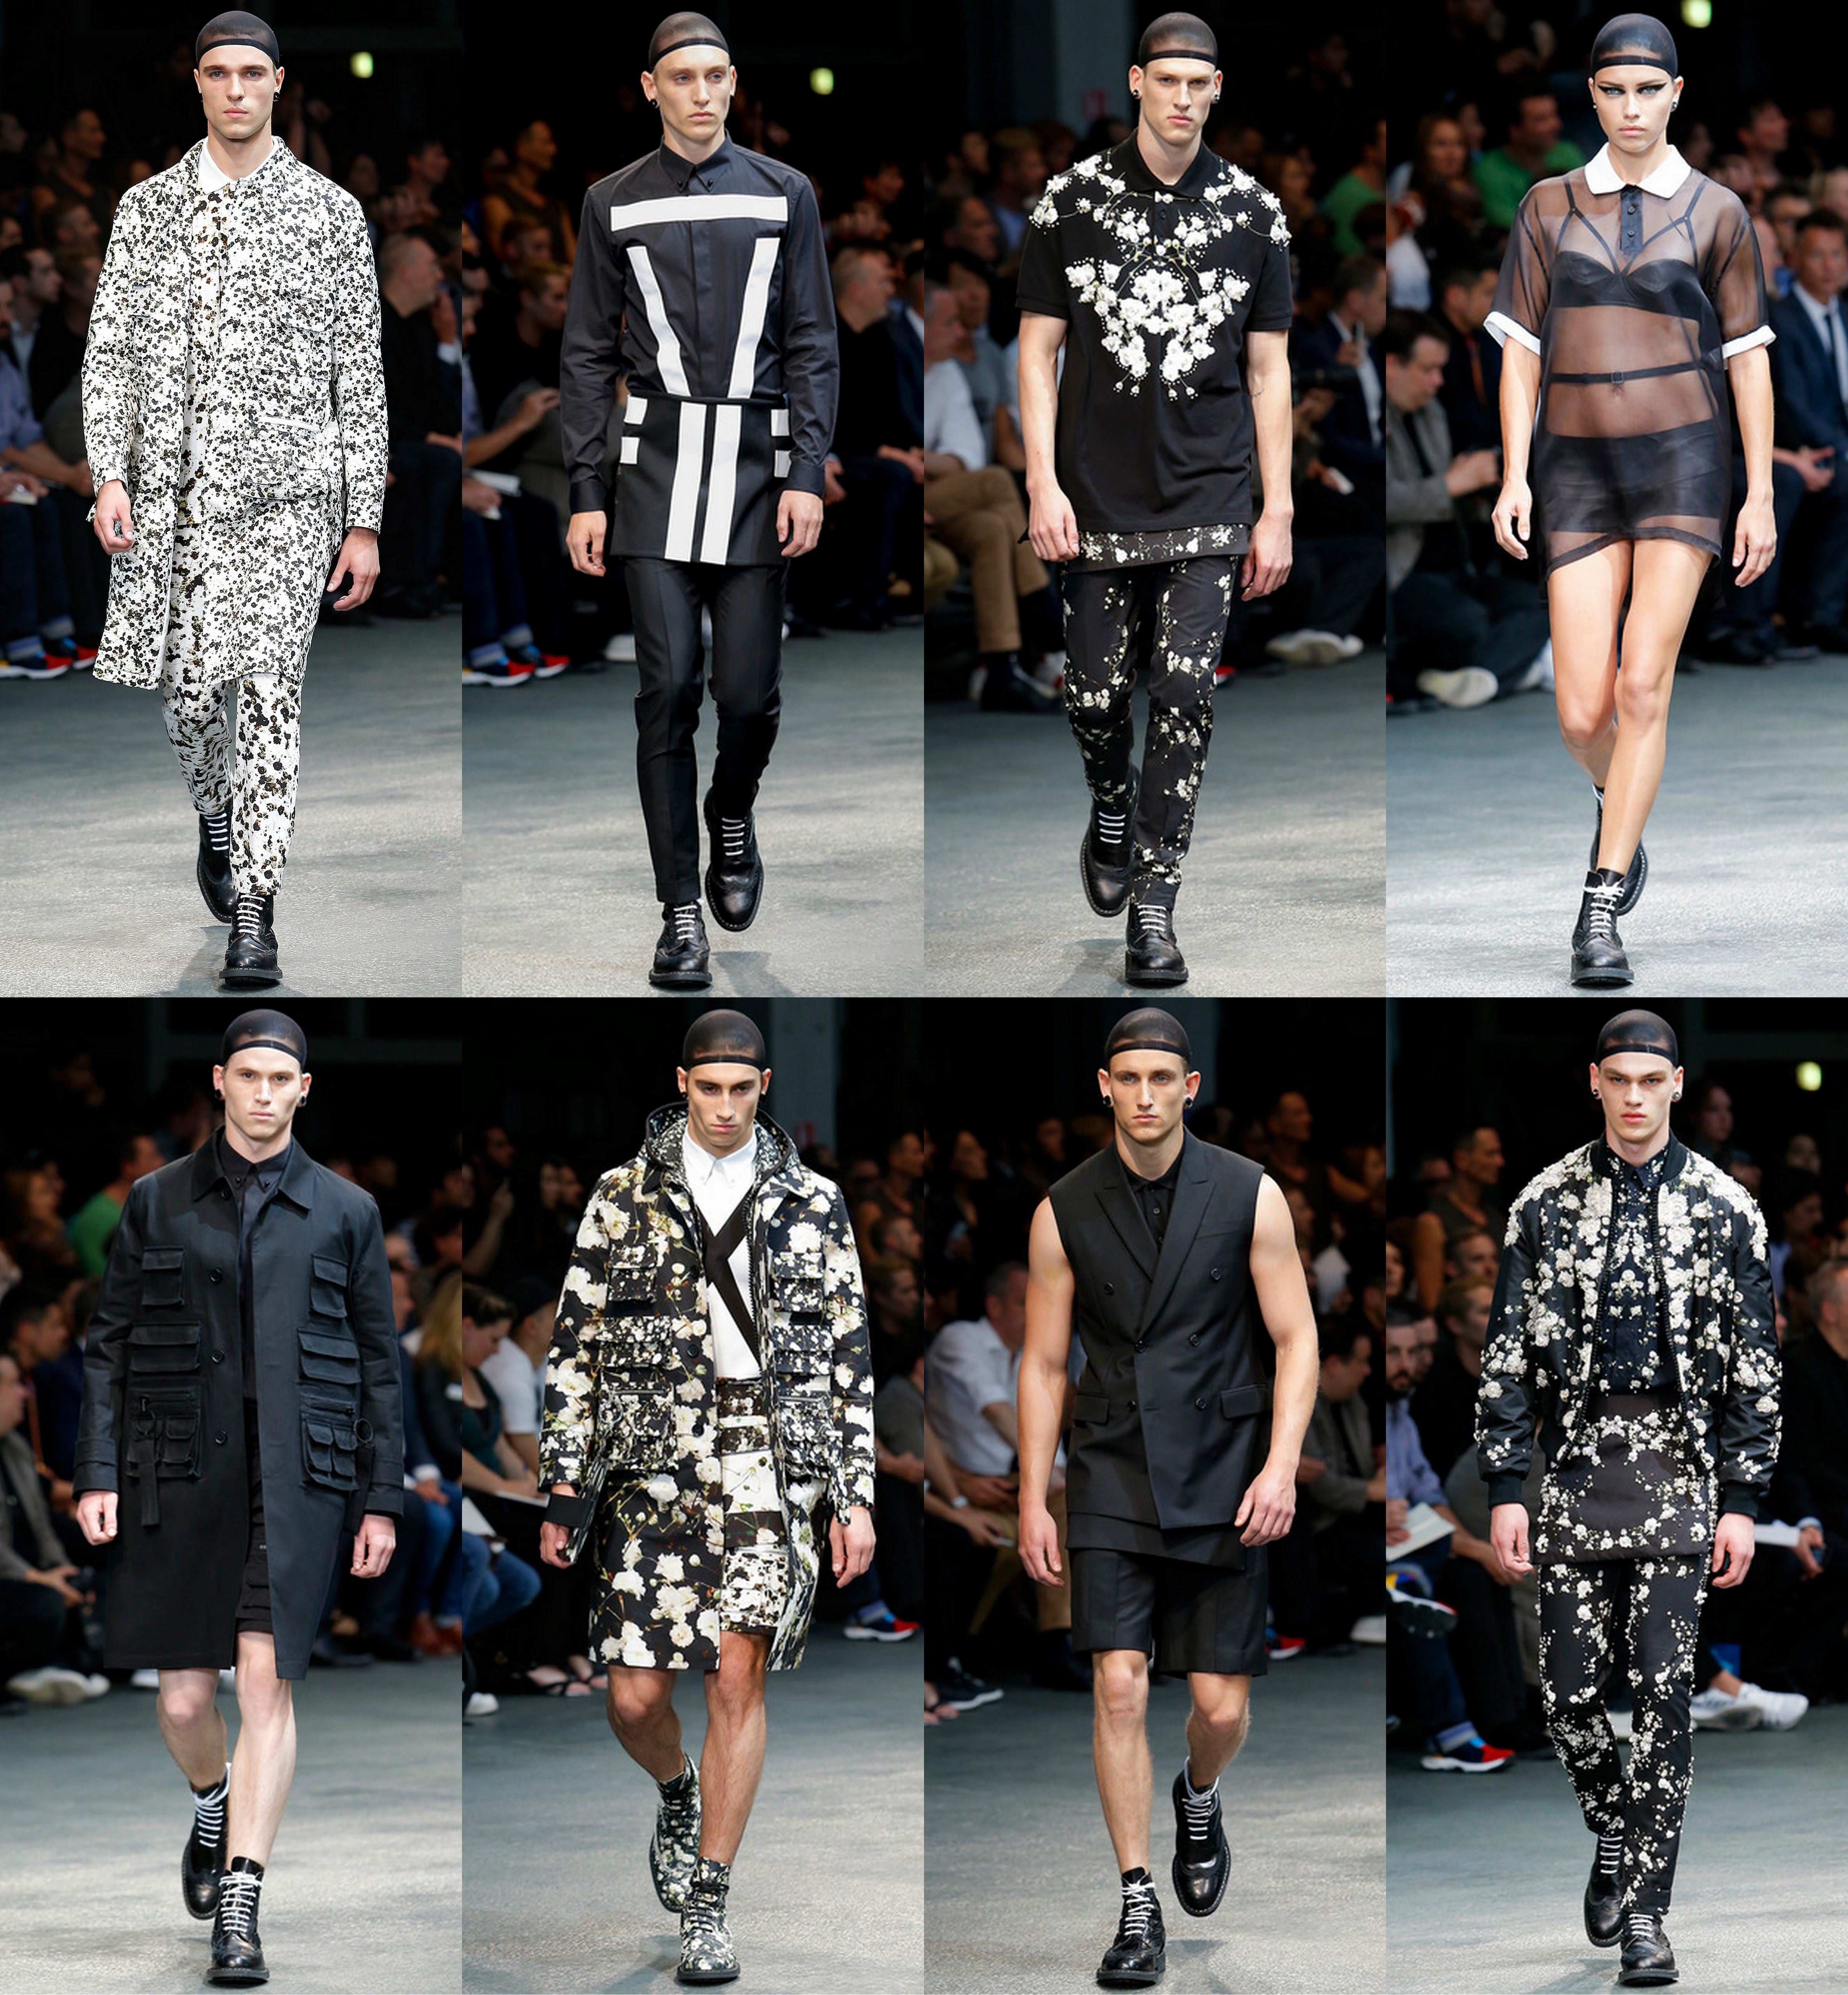 Spring/Summer 2015 Menswear - Givenchy